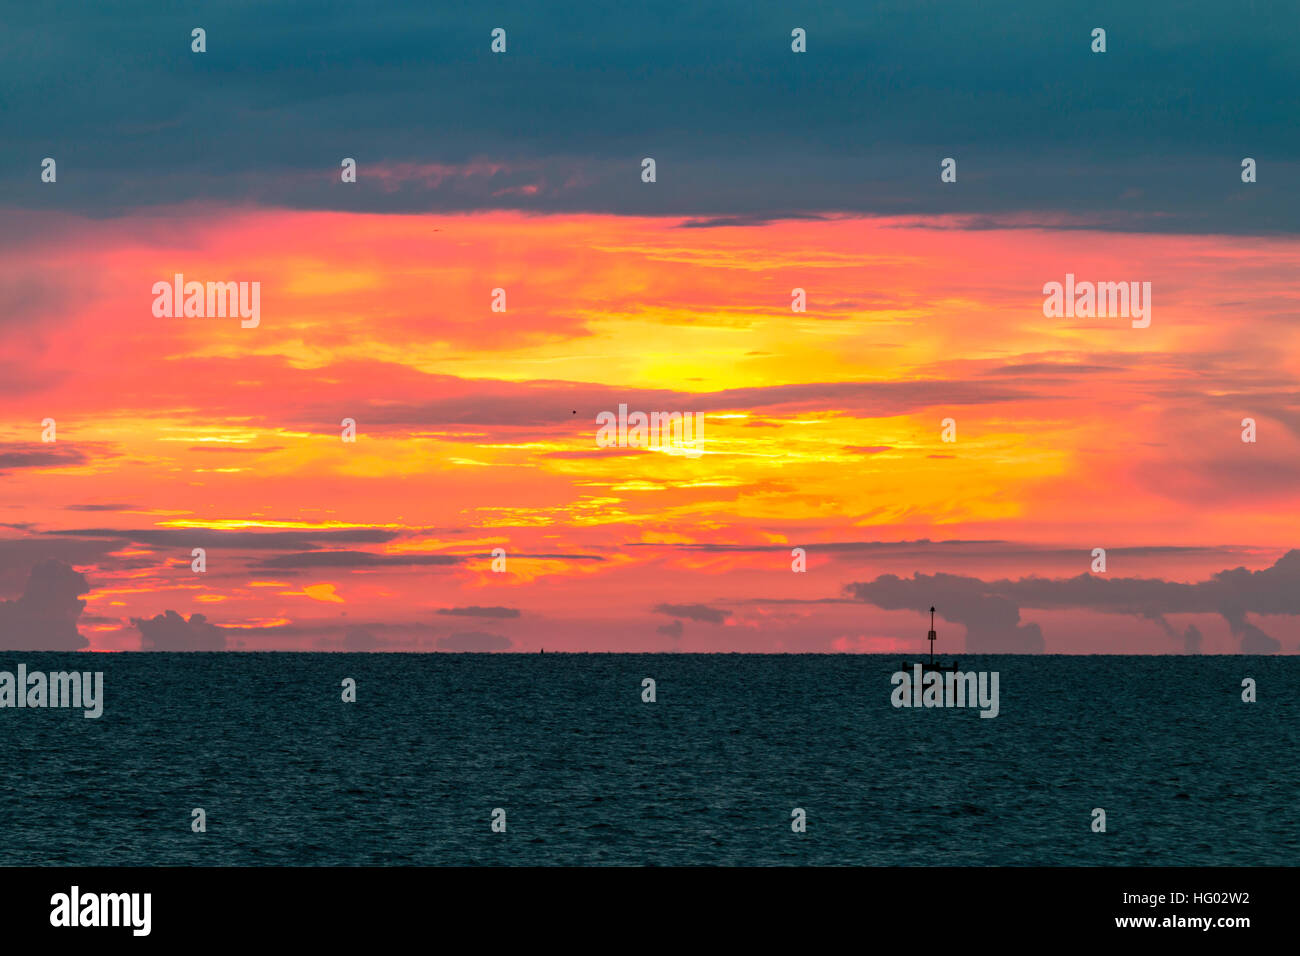 England, Herne Bay. English Channel at day break, dramatic orange and yellow sky on horizon with dark clouds above. - Stock Image